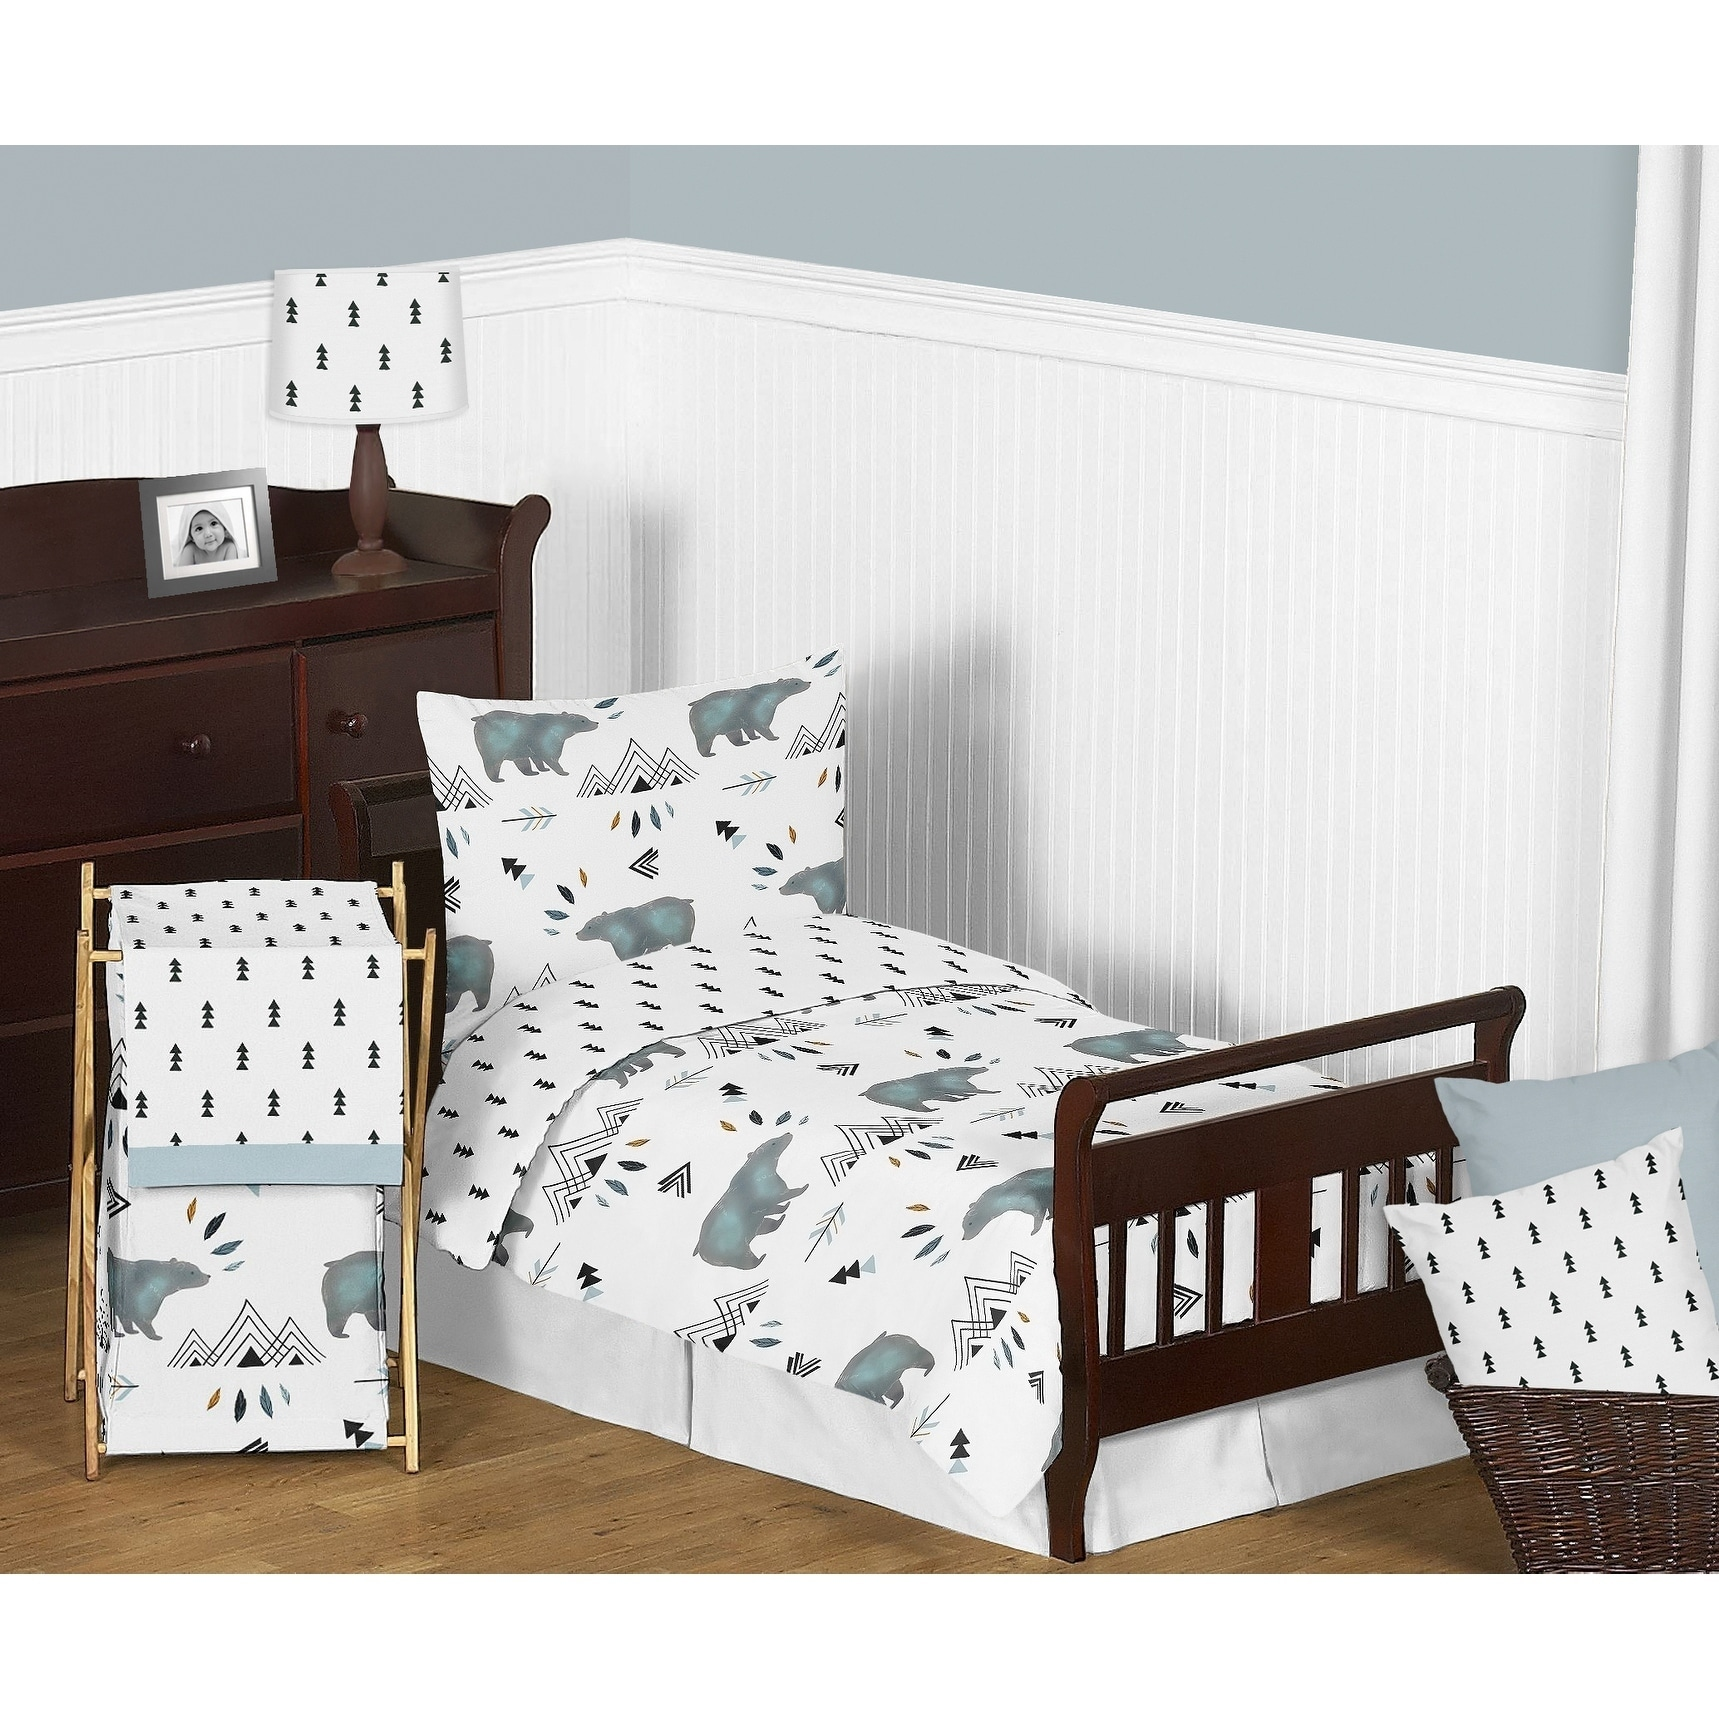 Shop 5pc Toddler Bedding Set For The Bear Mountain Collection By Sweet Jojo  Designs   Free Shipping Today   Overstock.com   18128924